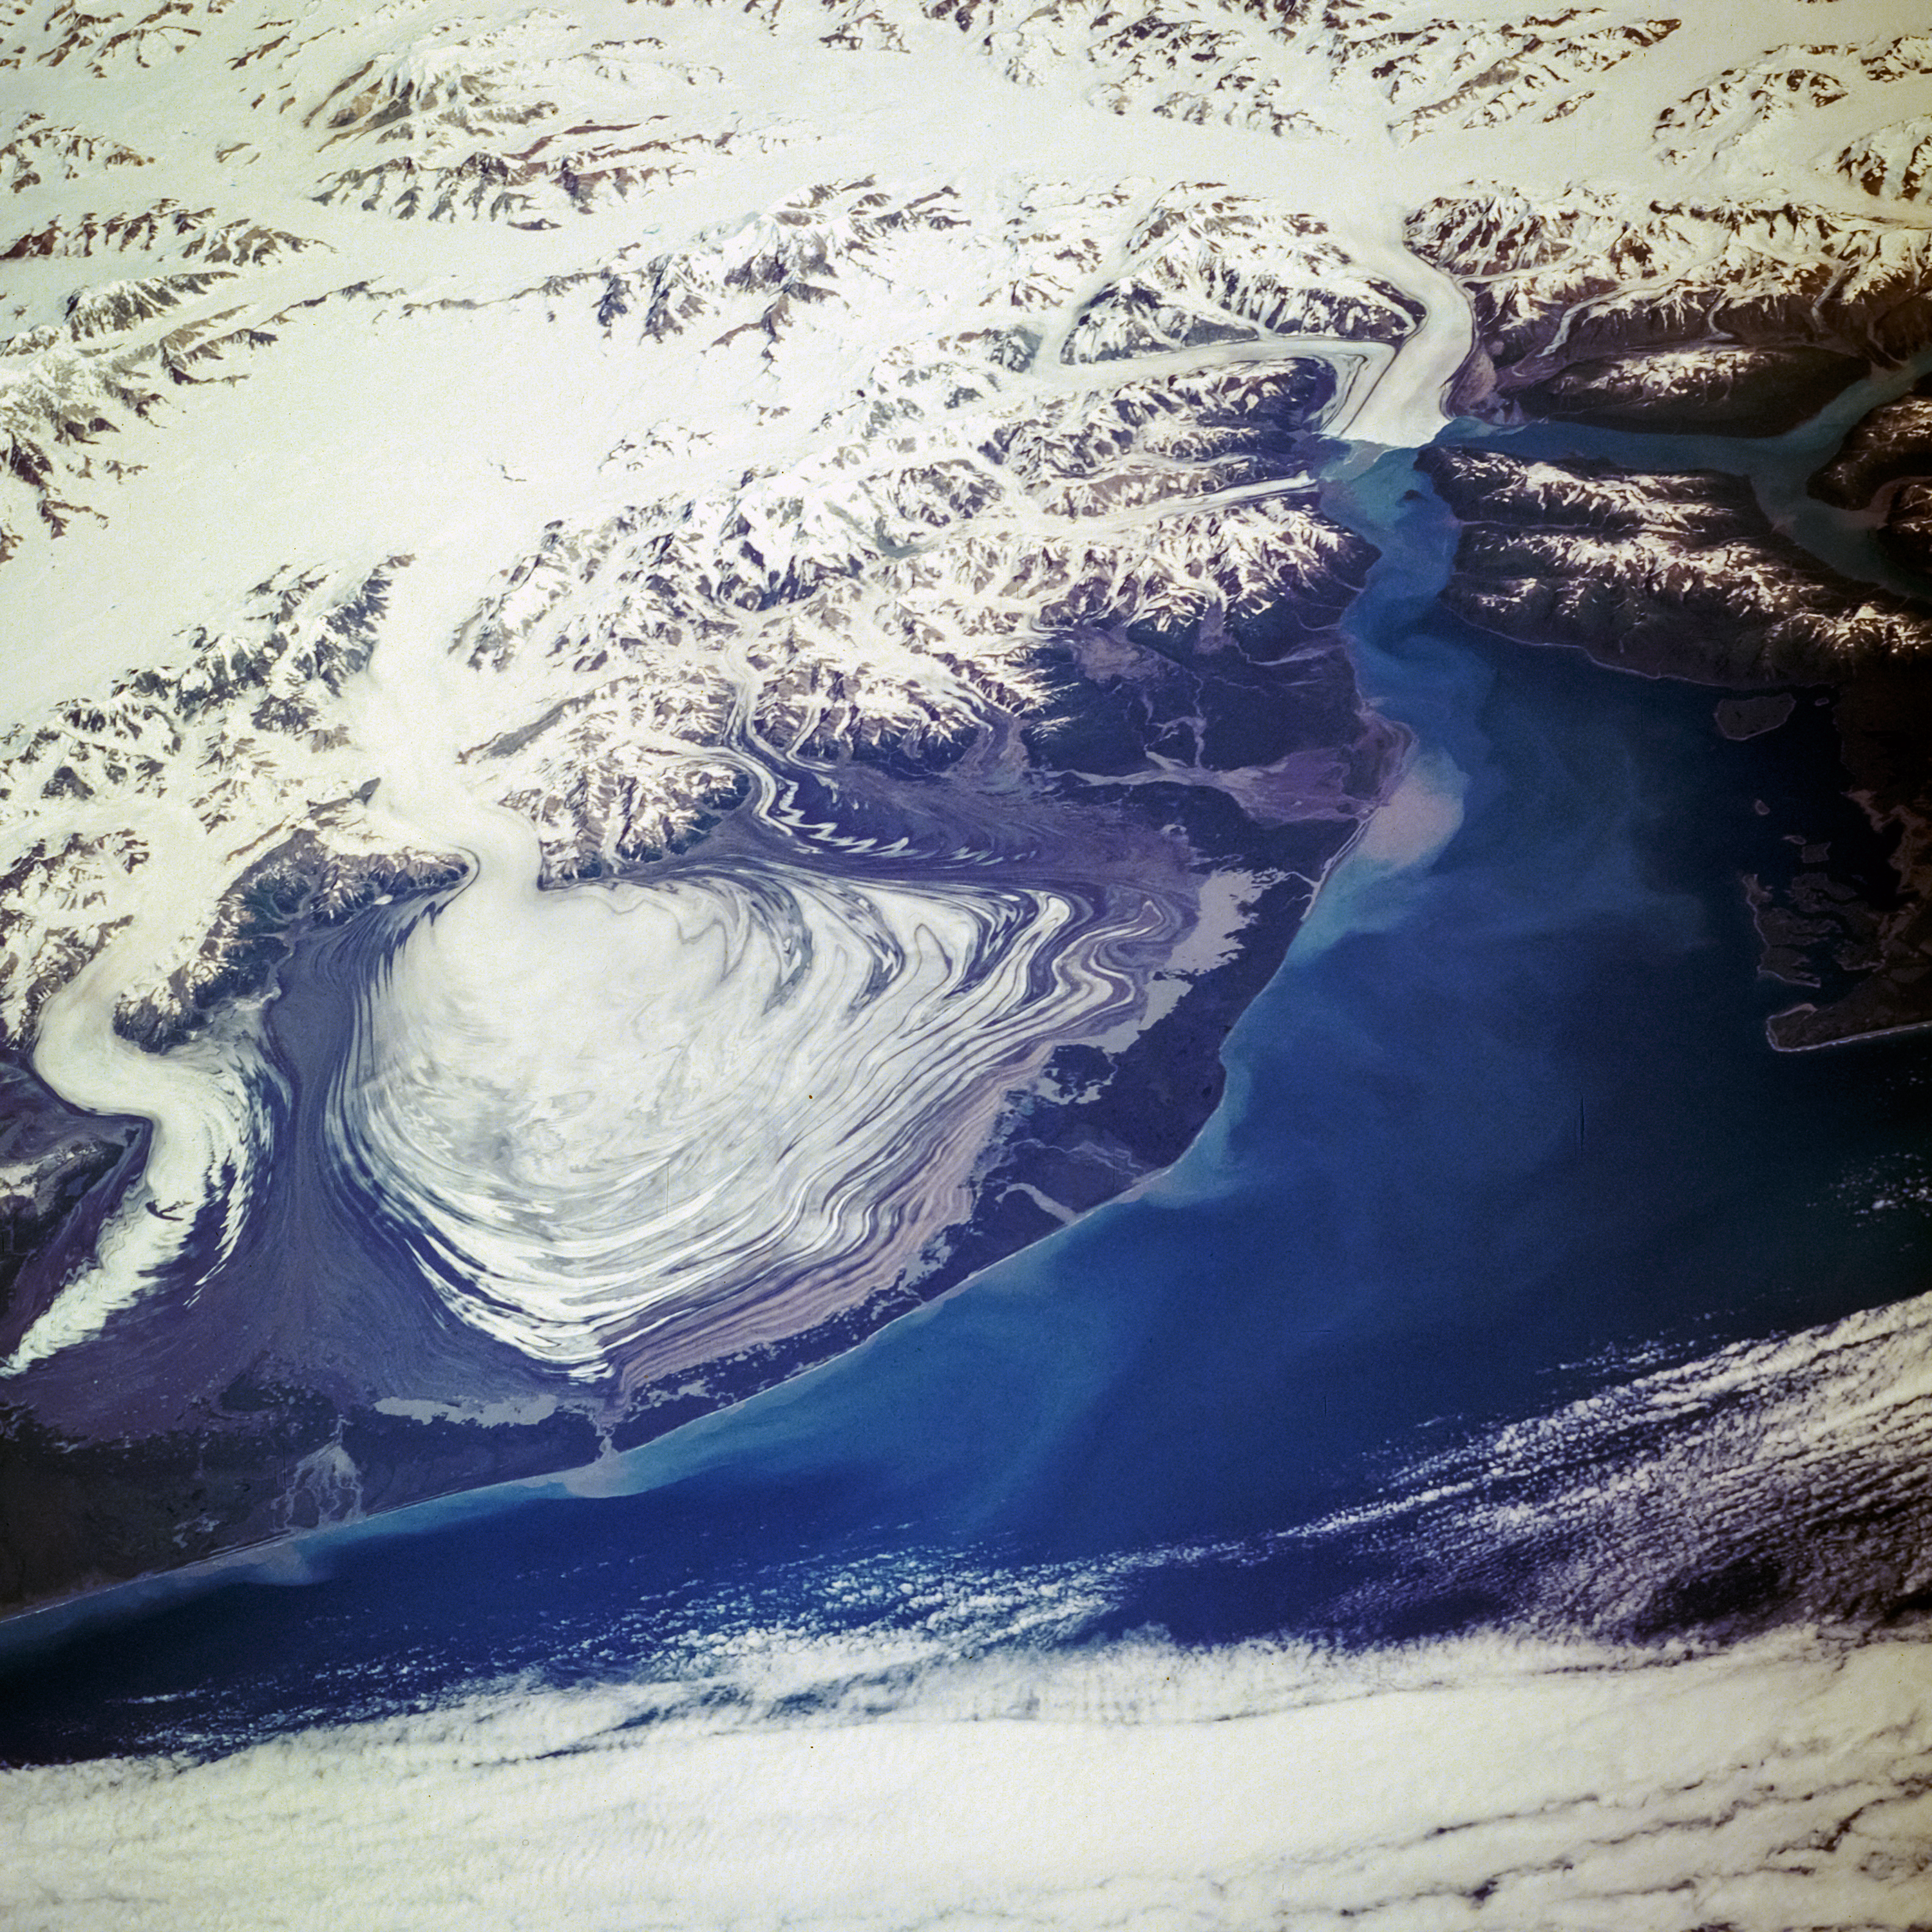 Aerial view of the Hubbard Glacier which is a  glacier located in eastern Alaska and part of Yukon Canada. Elements of this image furnished by NASA.